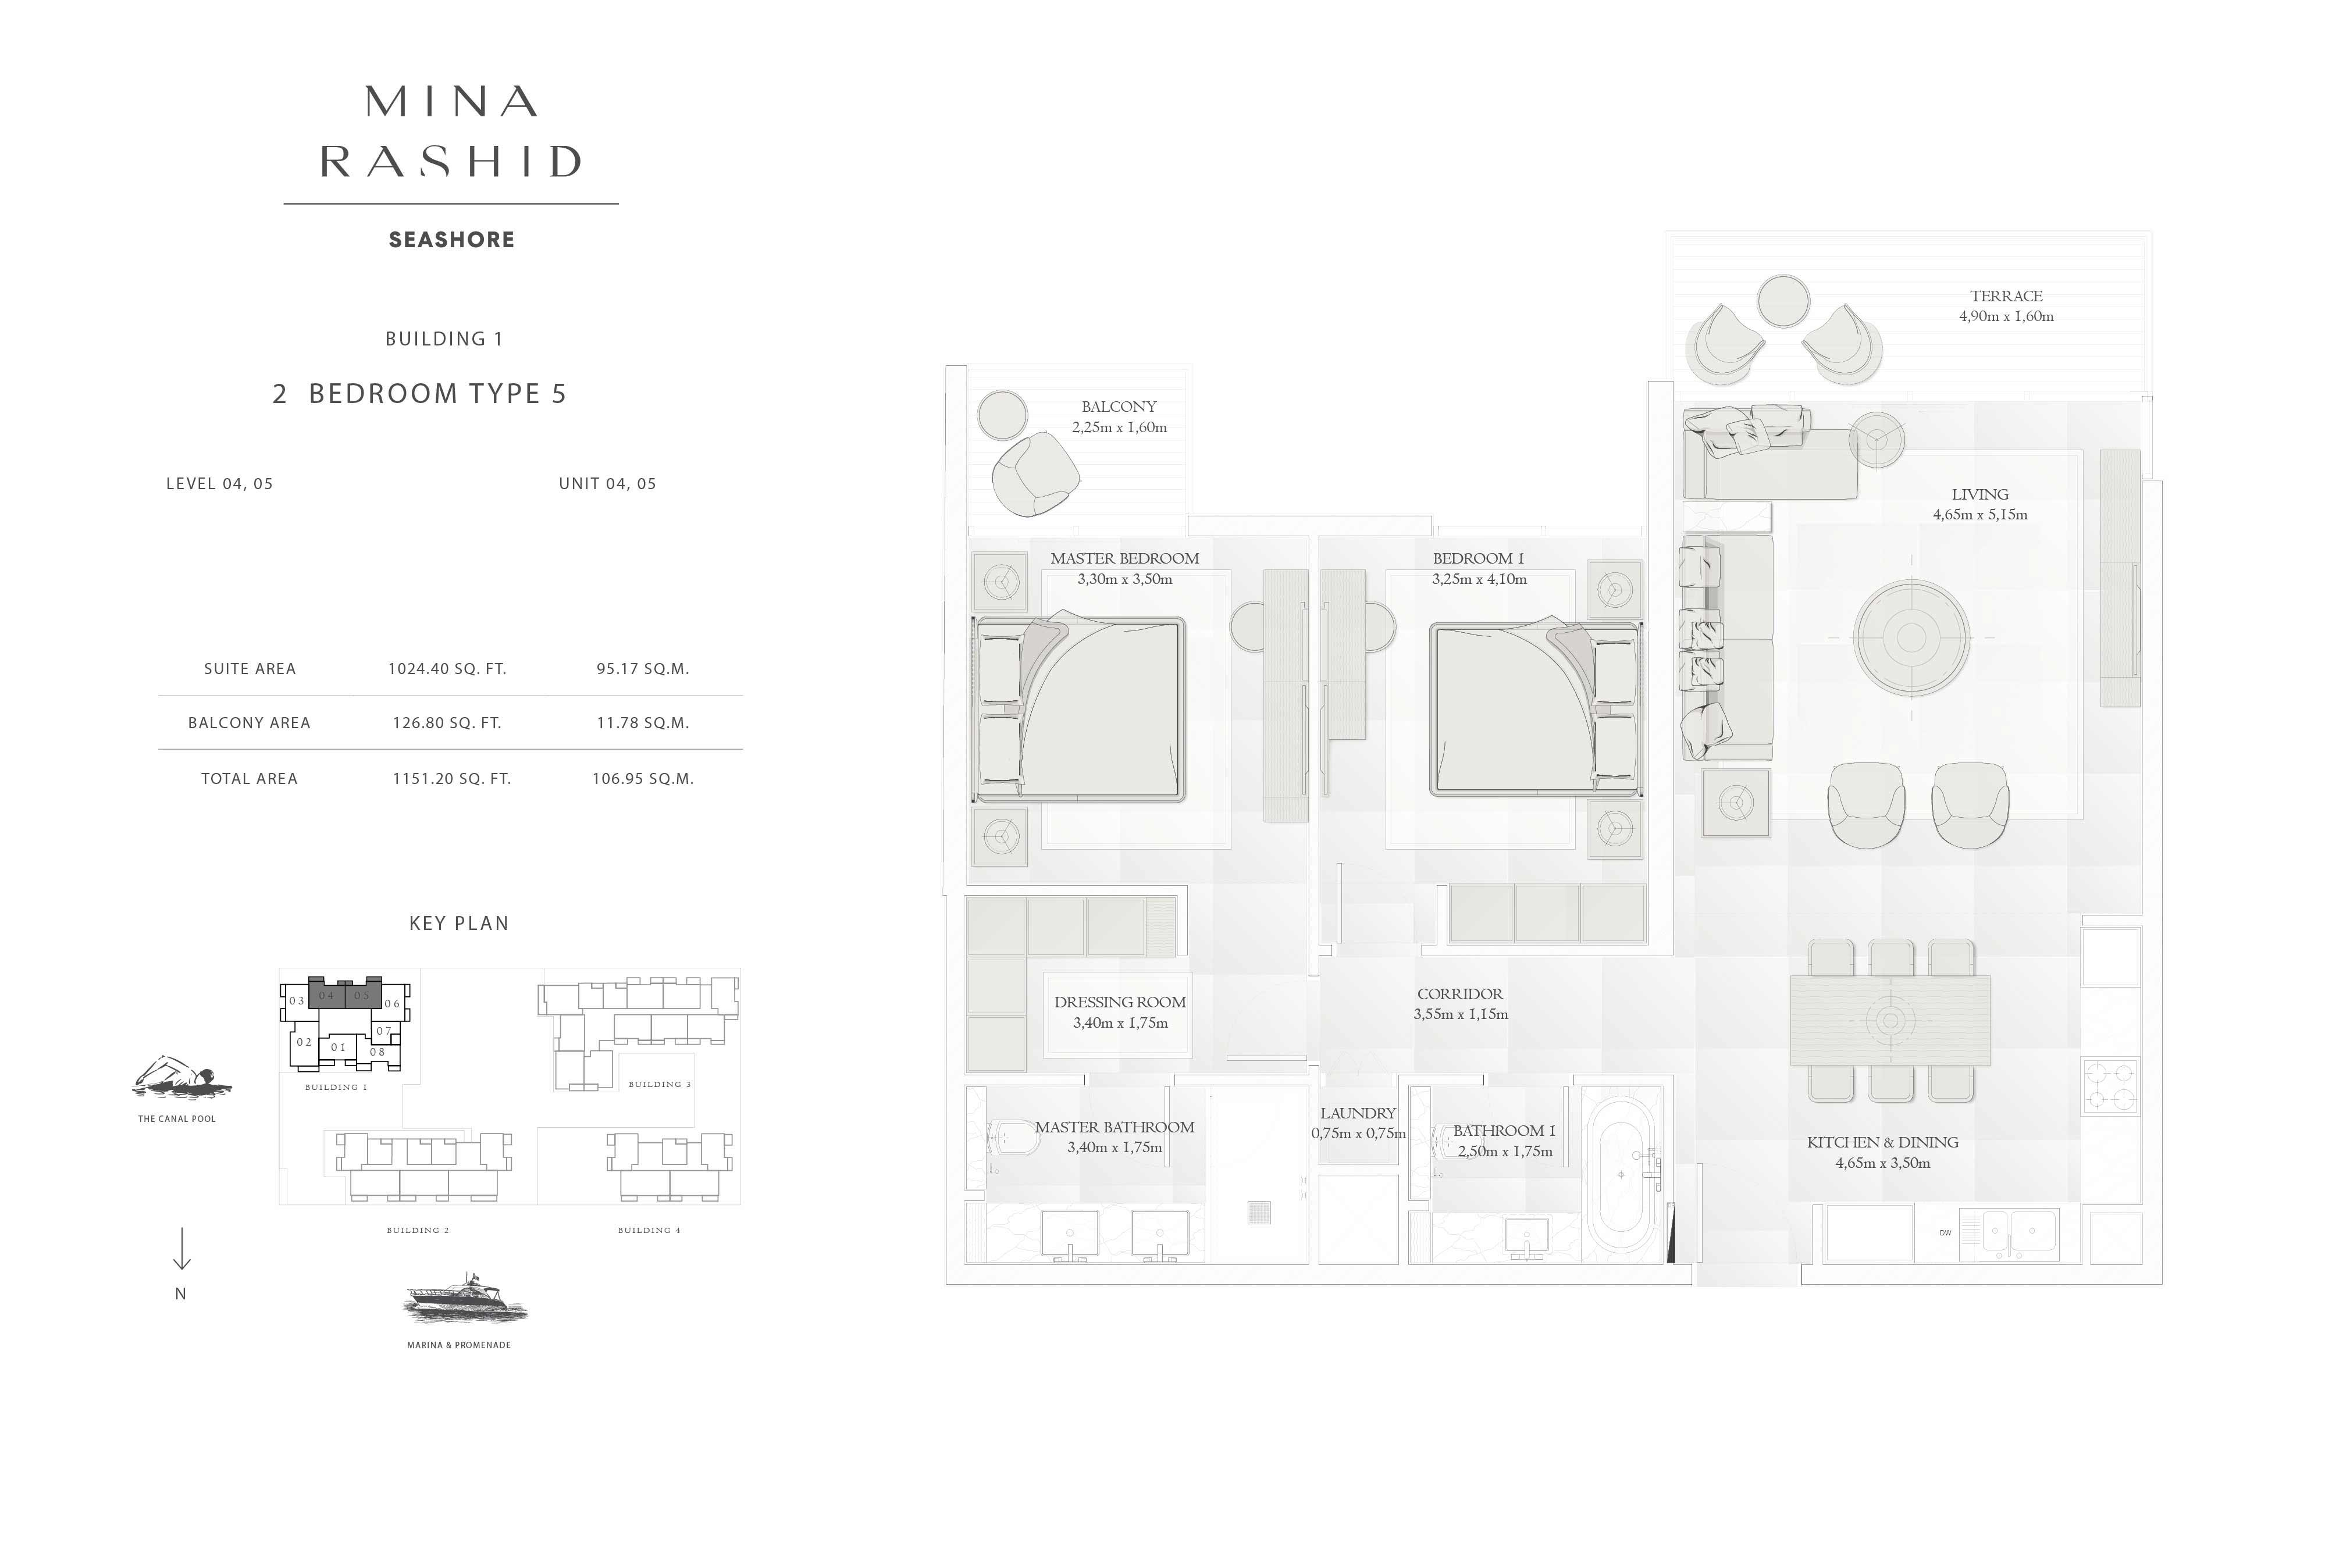 Building-1, 2-Bedroom Type-5, Level(4, 5), Size-1151-Sq-Ft